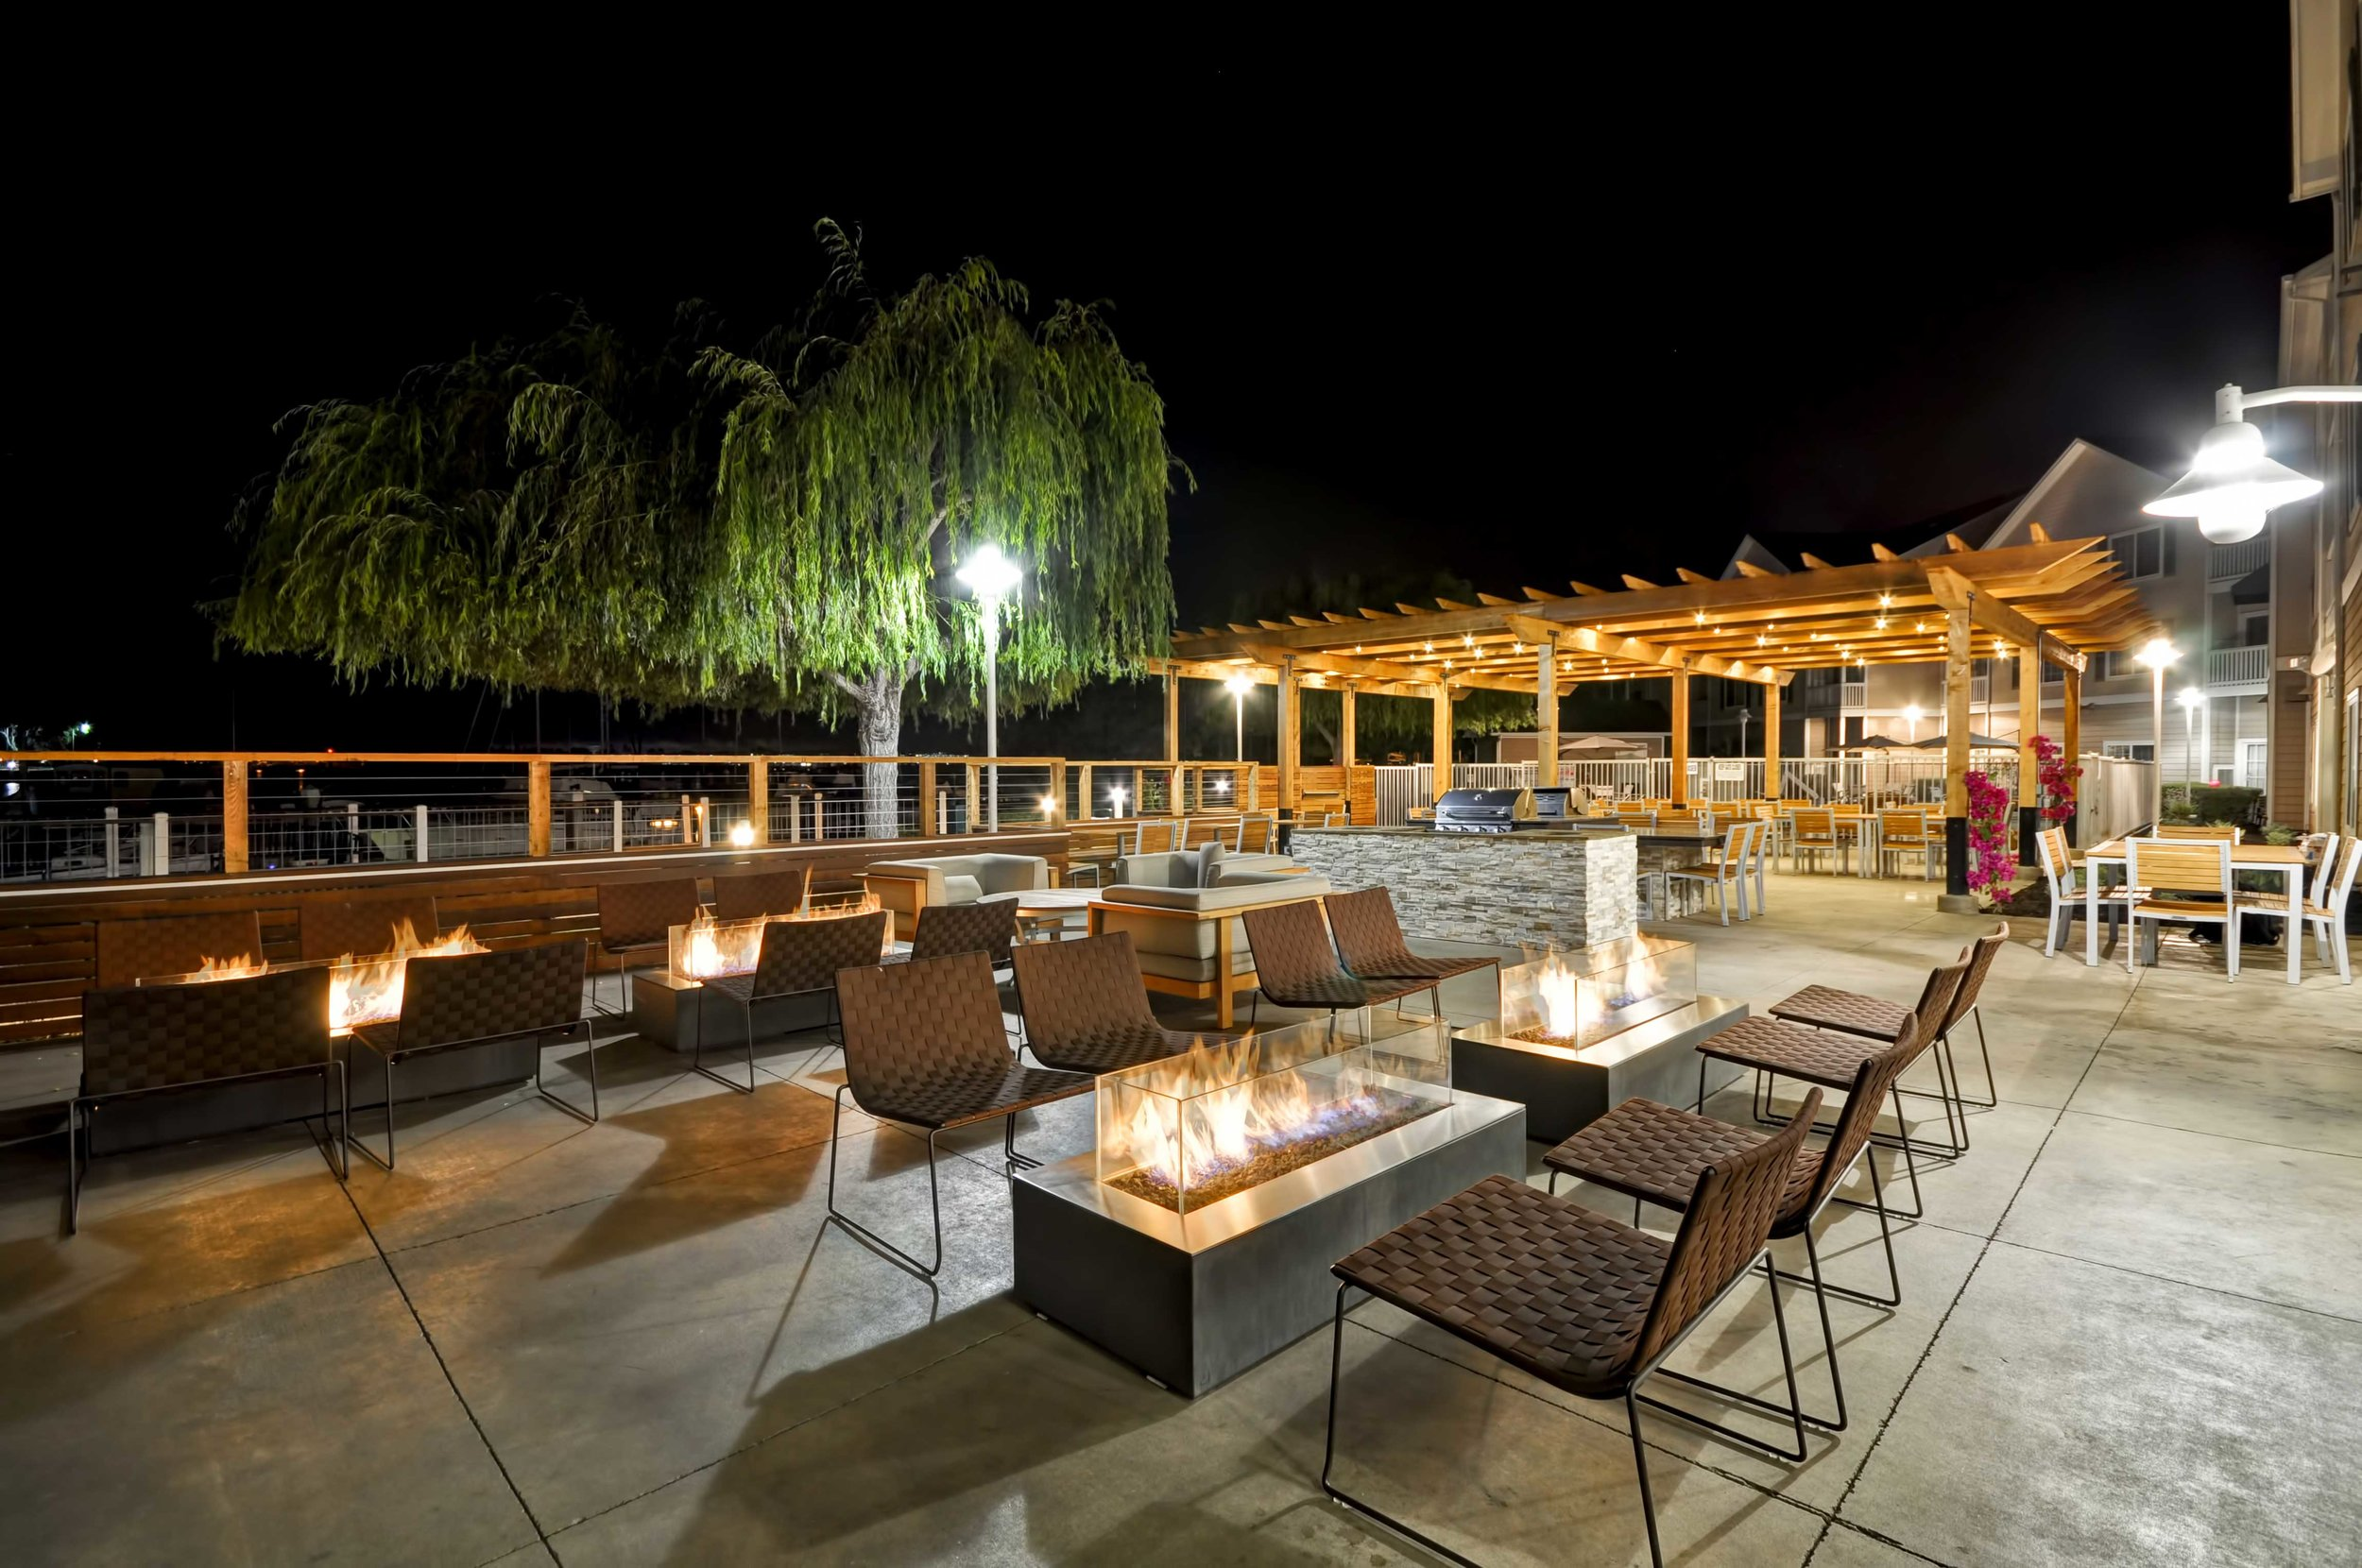 13-Homewood-Suites-Oakland-Patio--Firepits---PM.jpg